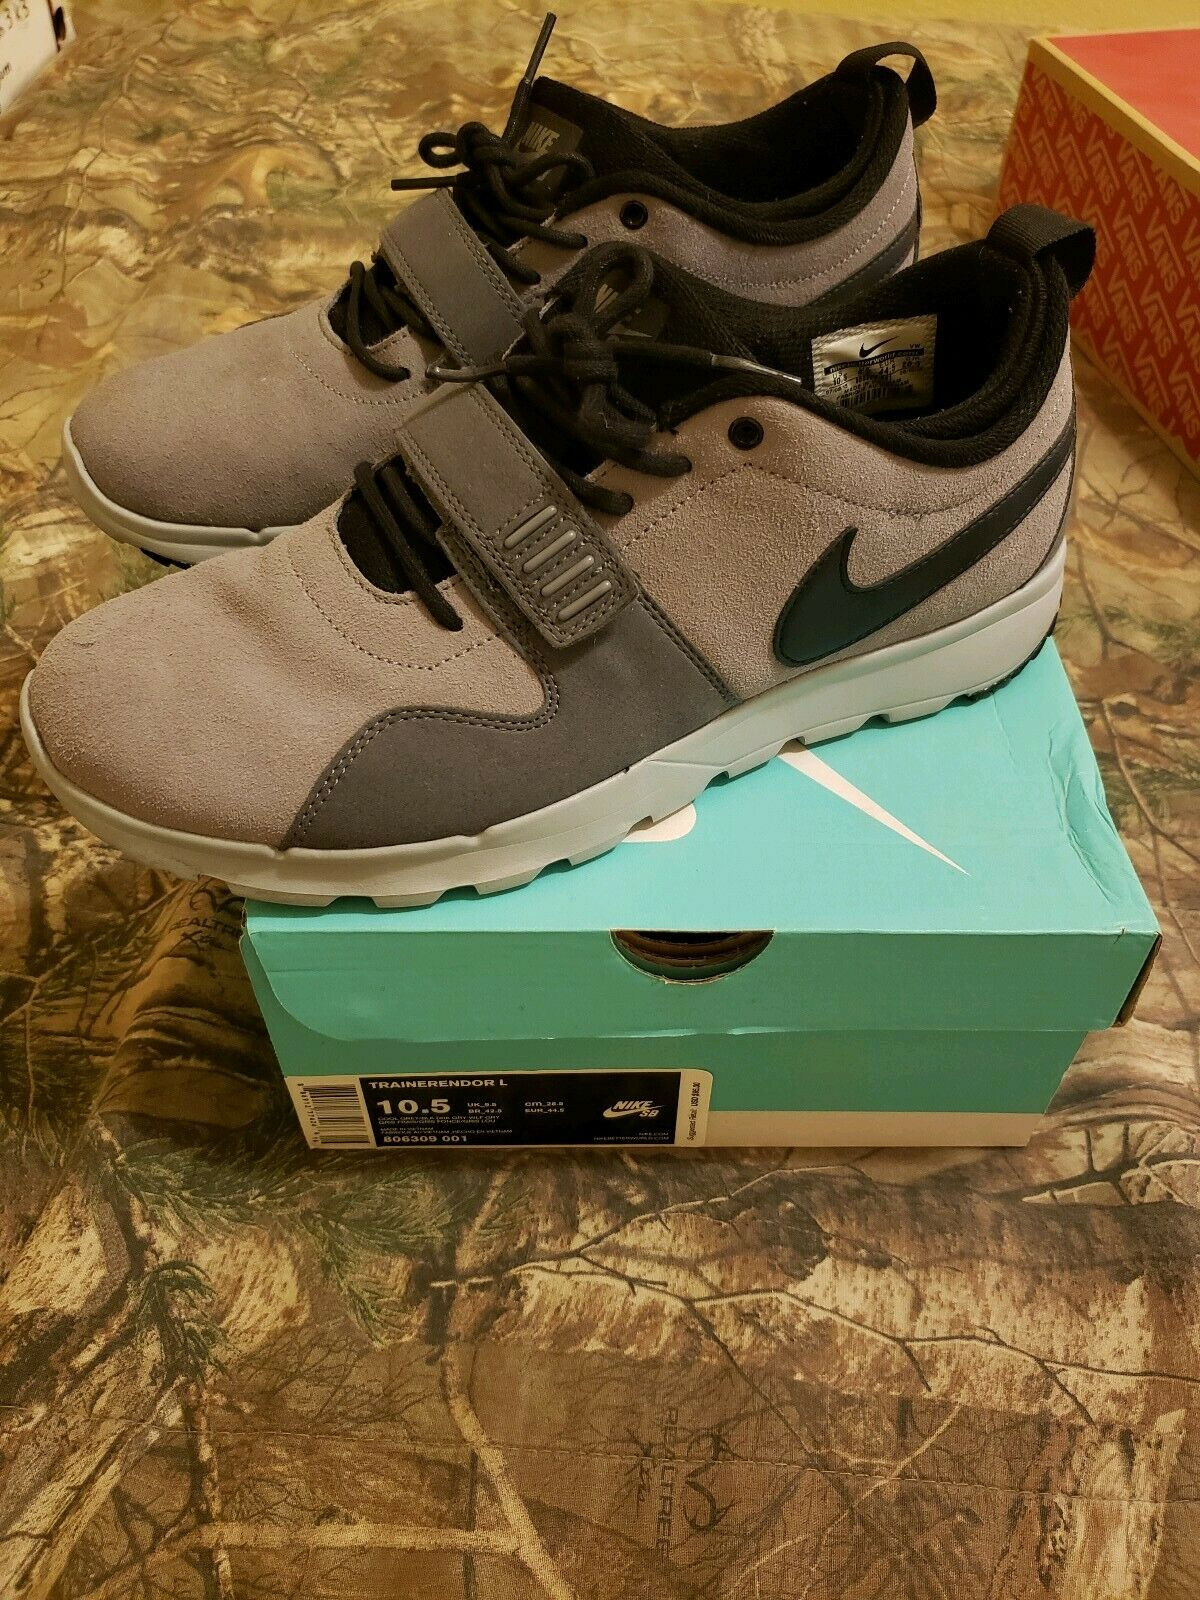 Nike sb trainerendor L grey and black 10.5 with box excellent condition